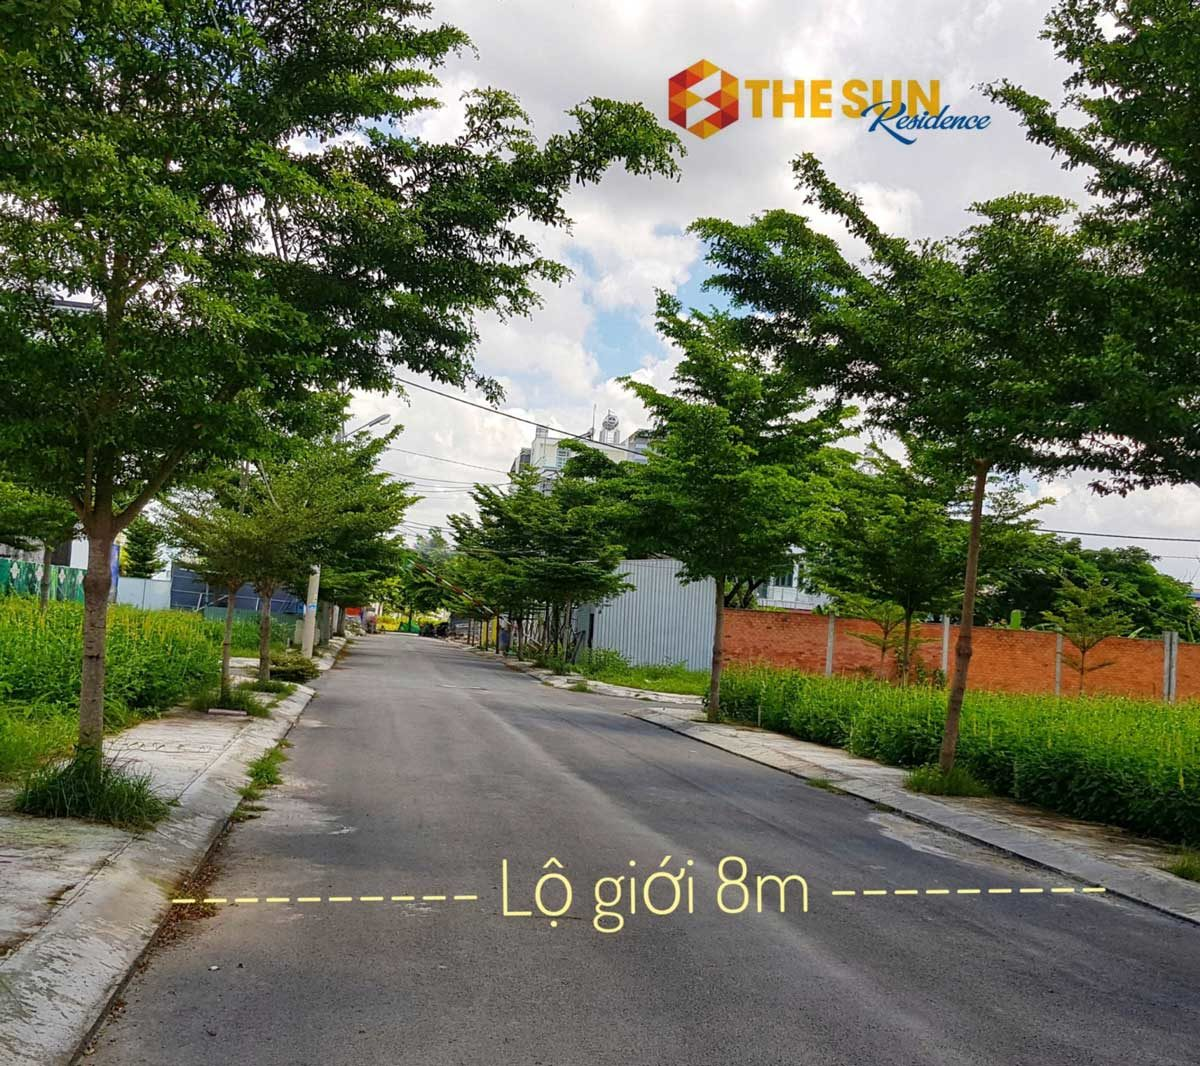 lo-gioi-du-an-the-sun-residence-nha-be